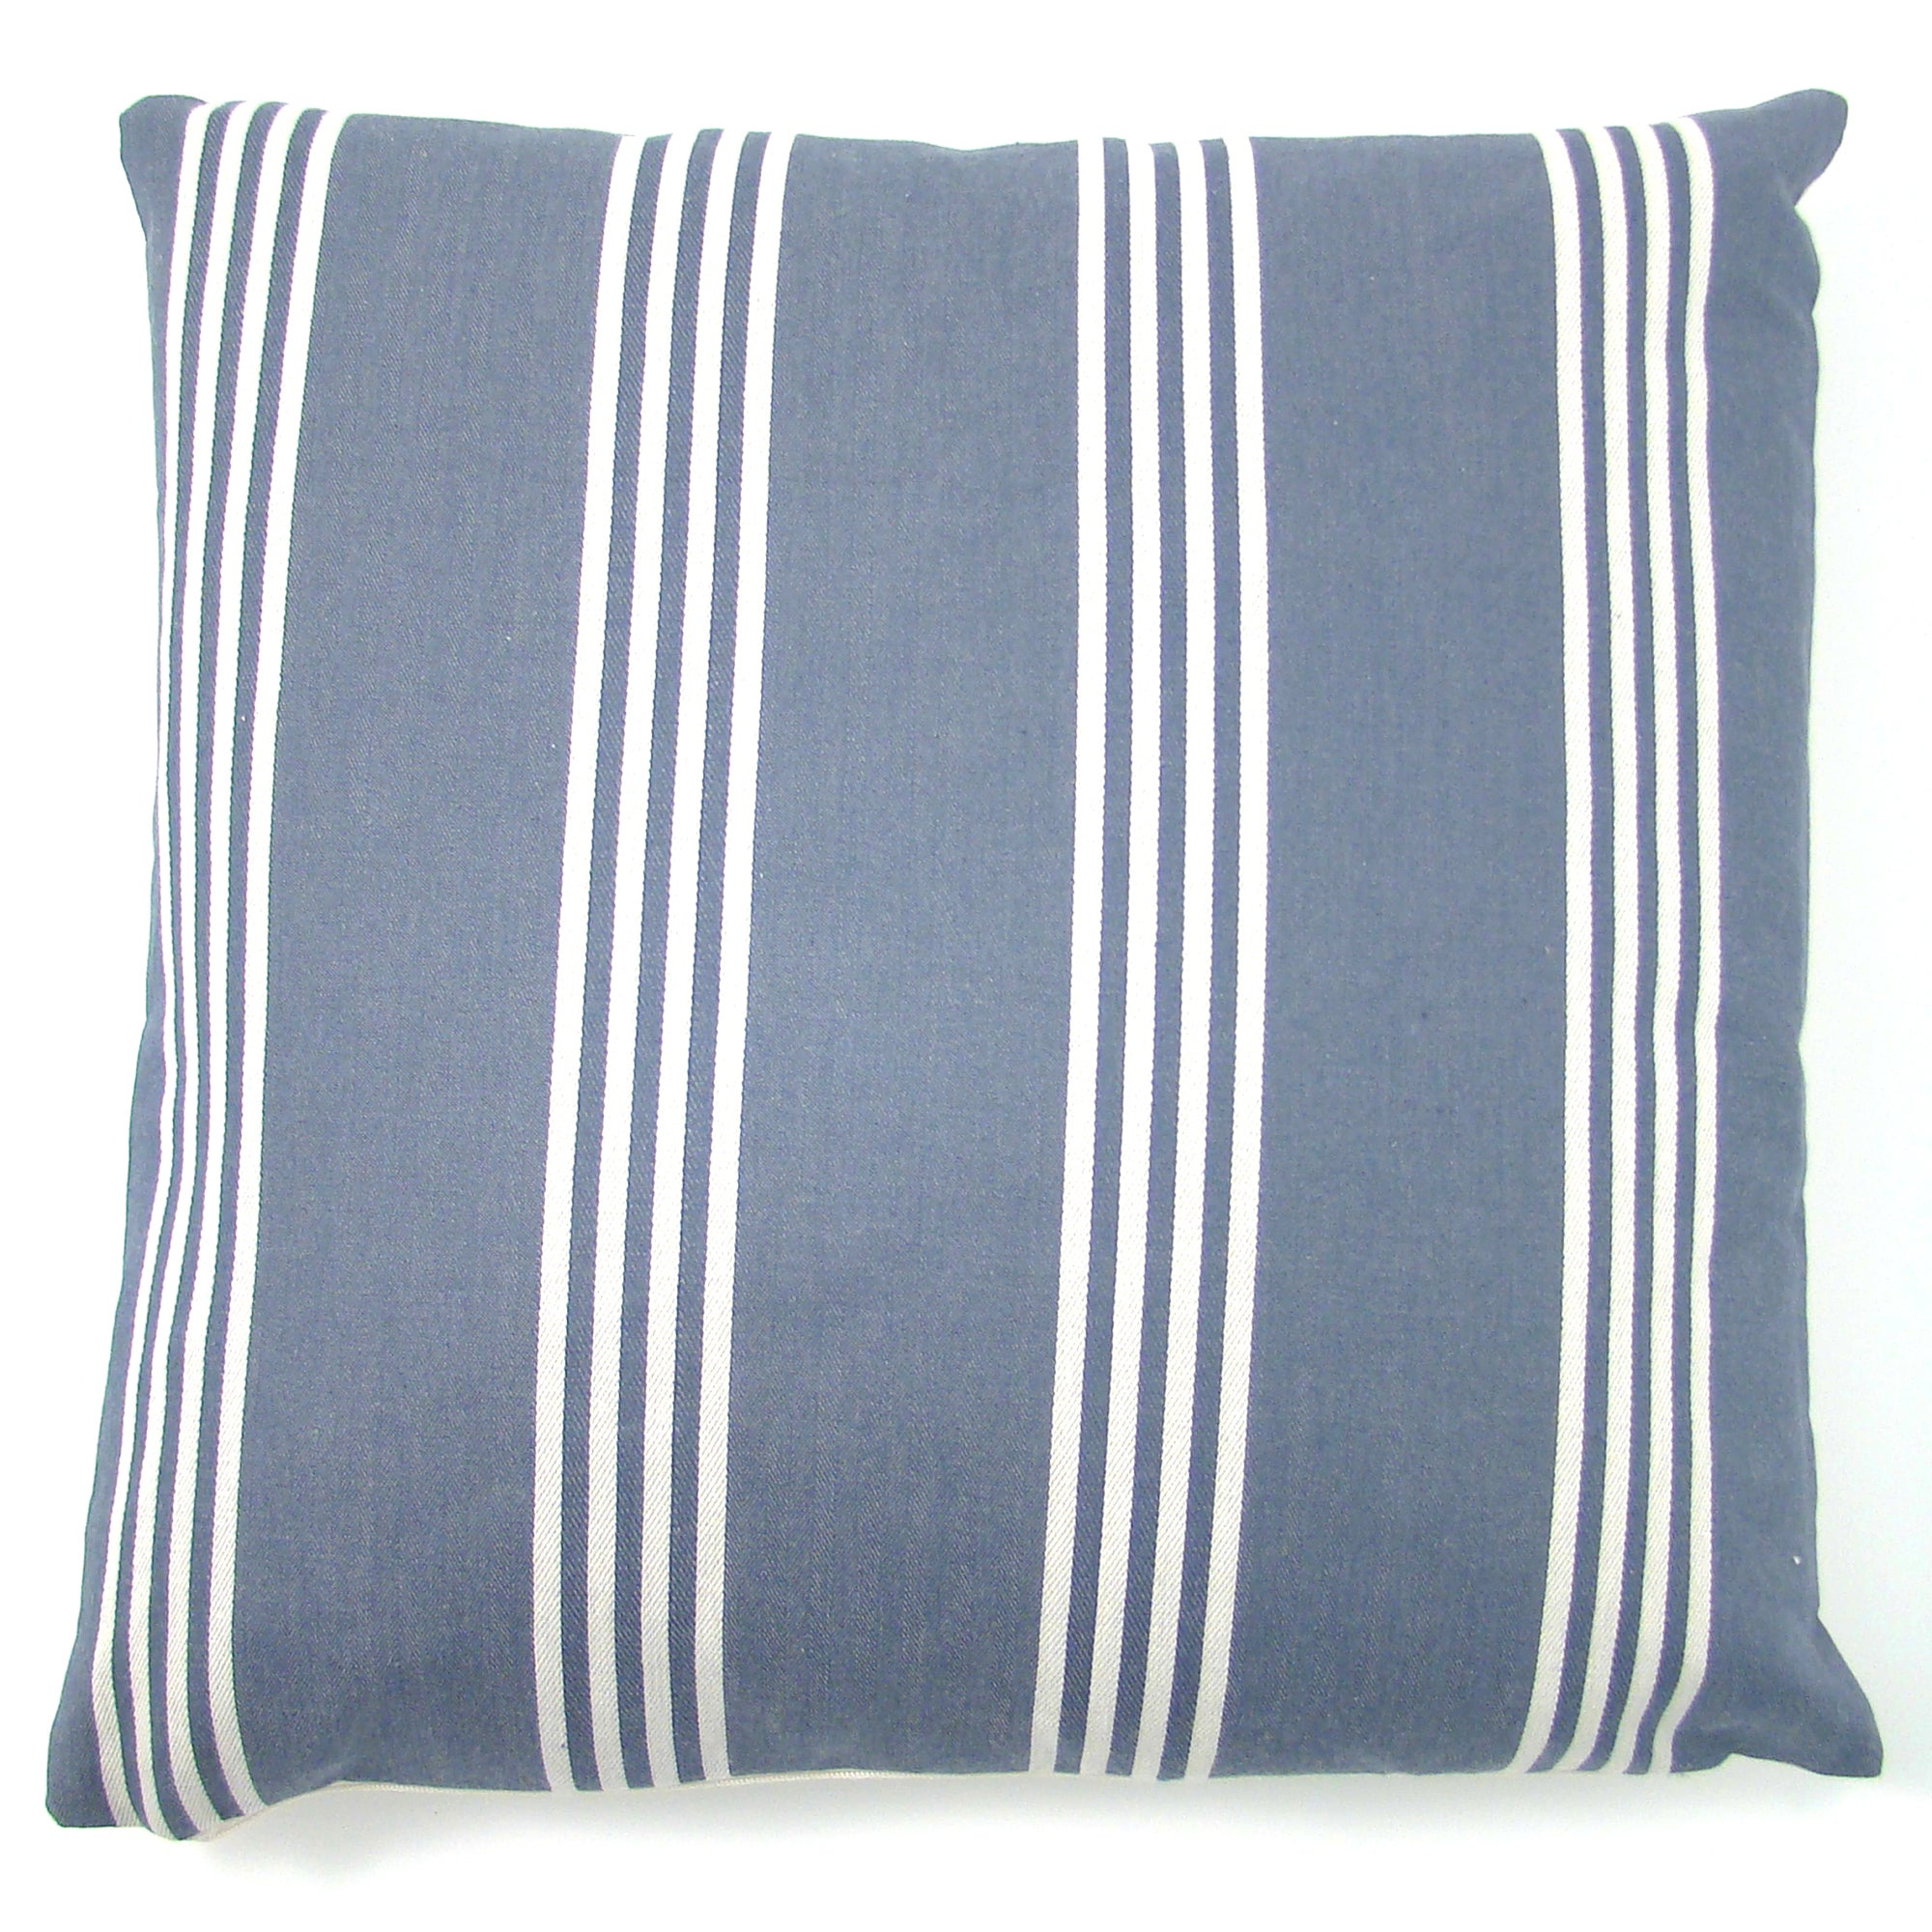 Oslo Cushion Cover